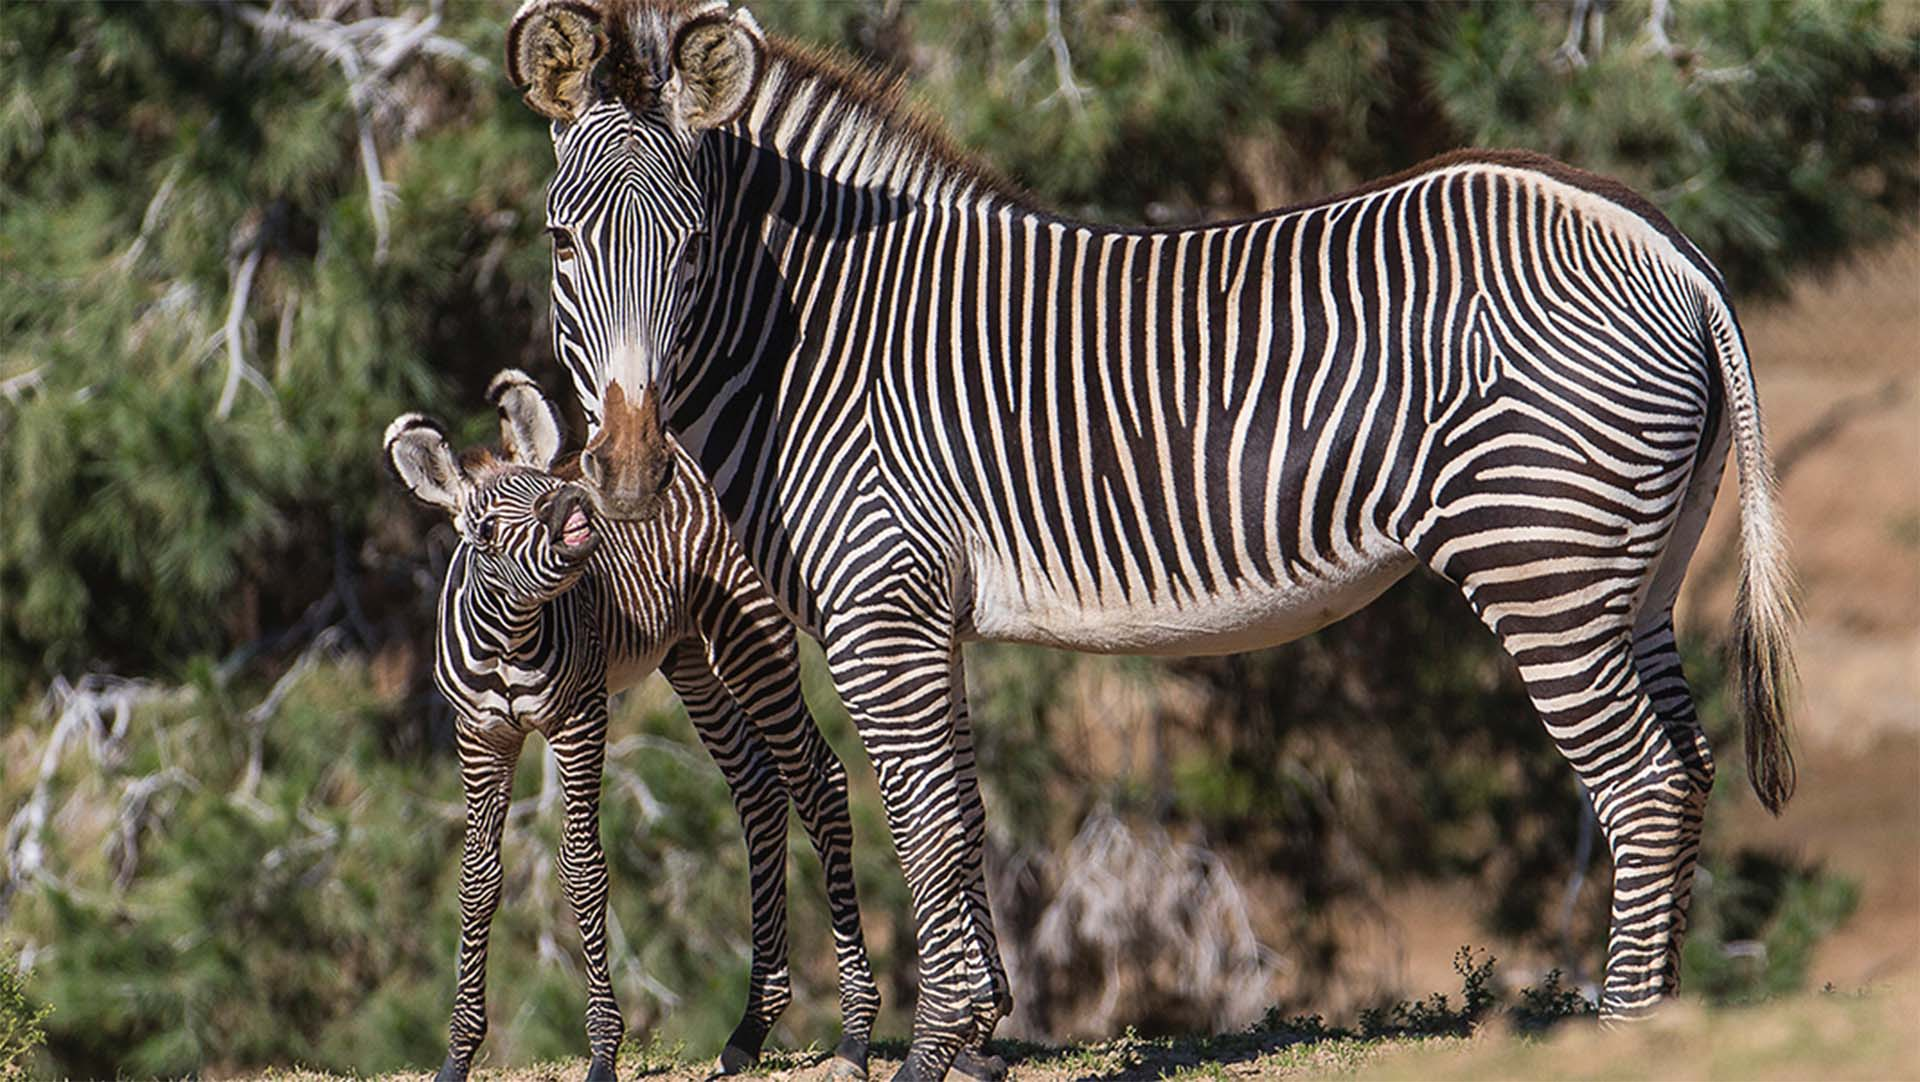 A zebra foal looks at its mother to memorize her unique stripe pattern.